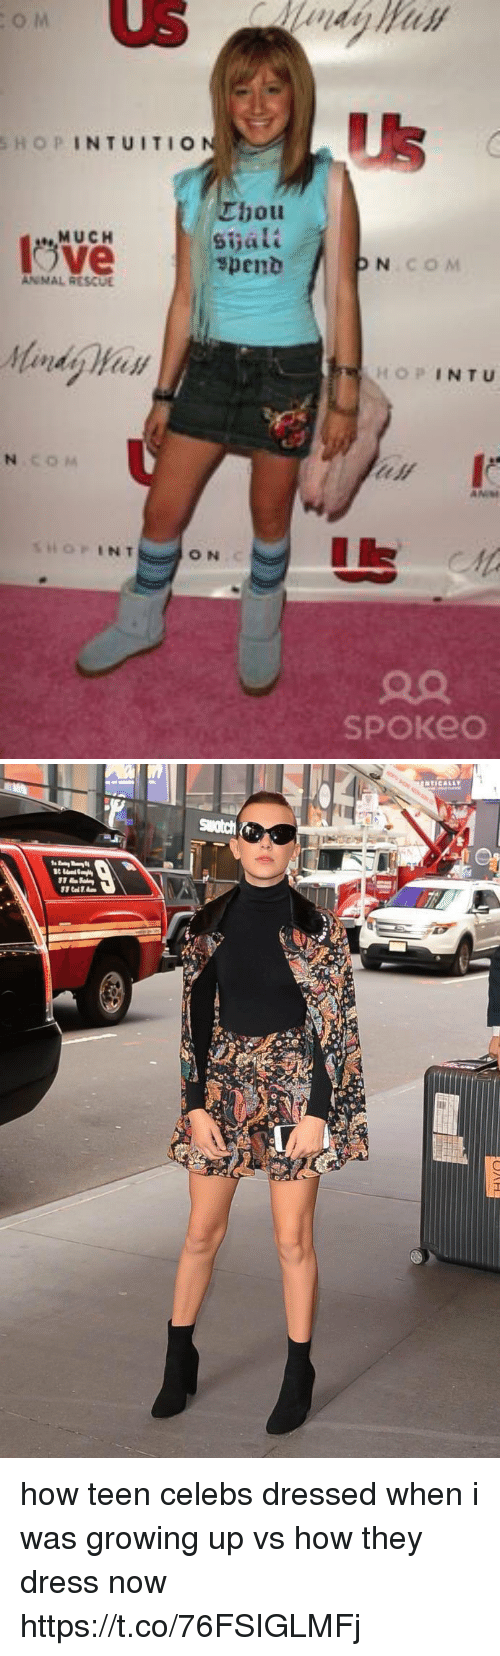 Funny, Growing Up, and Dress: ts  SHOPINTUITIo  hou  Sijali  spenb  MUCH  COM  HOPINTU  Us  ON  SPOKeO how teen celebs dressed when i was growing up vs how they dress now https://t.co/76FSIGLMFj